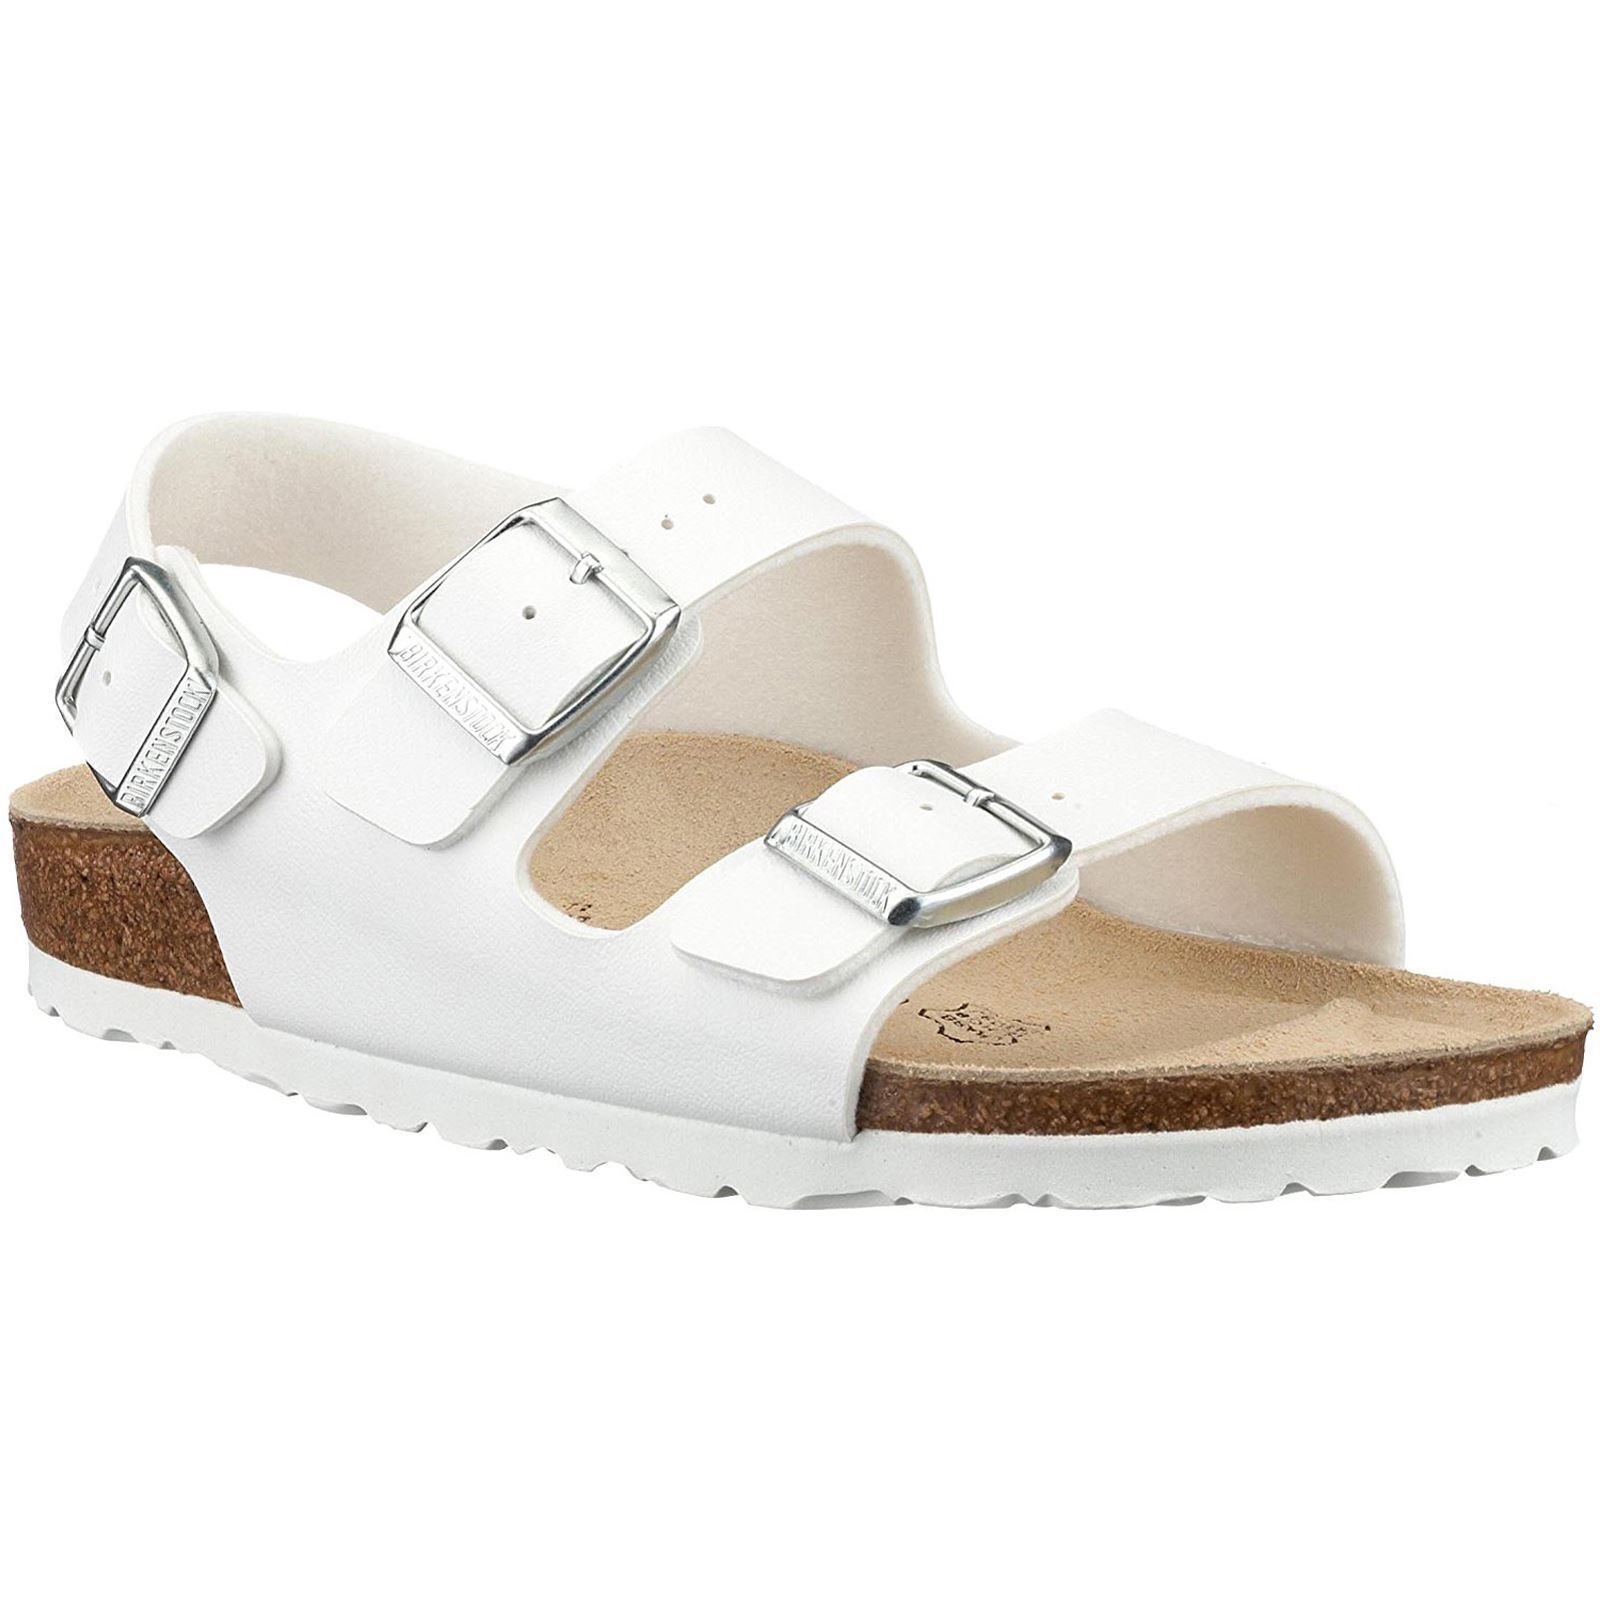 Mr/Ms Birkenstock Milano White Mens Birko-Flor Three Straps of Sandals Fine workmanship King of Straps quantity Good quality HG477 a52d6b